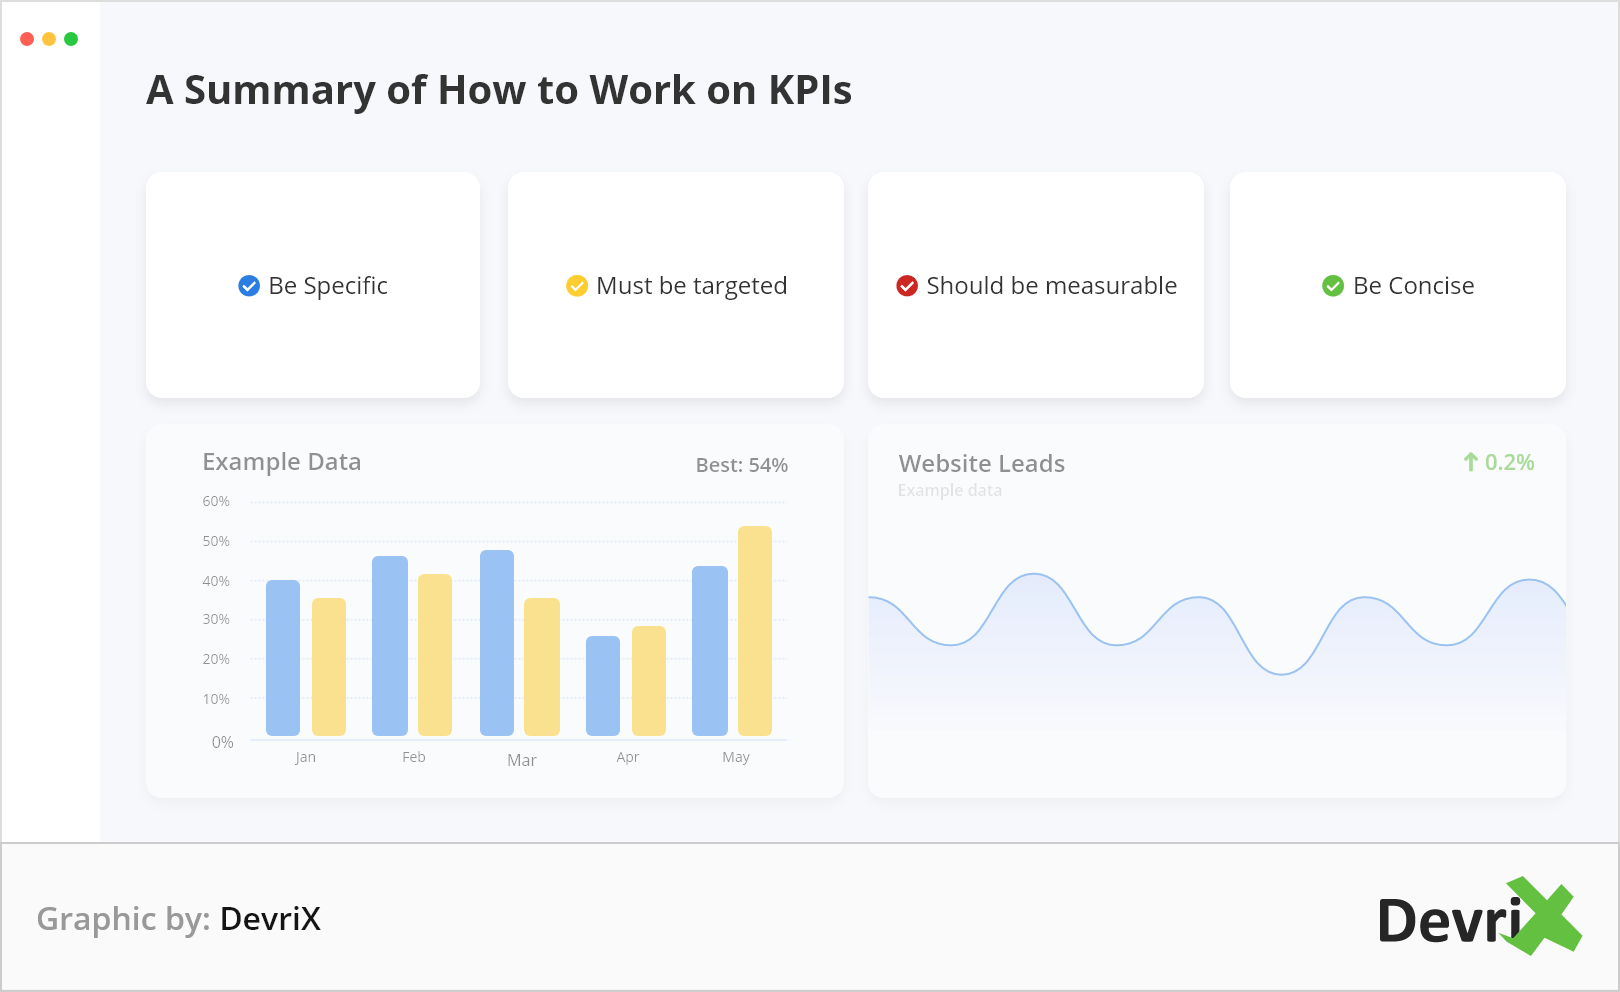 how to work on KPIs: